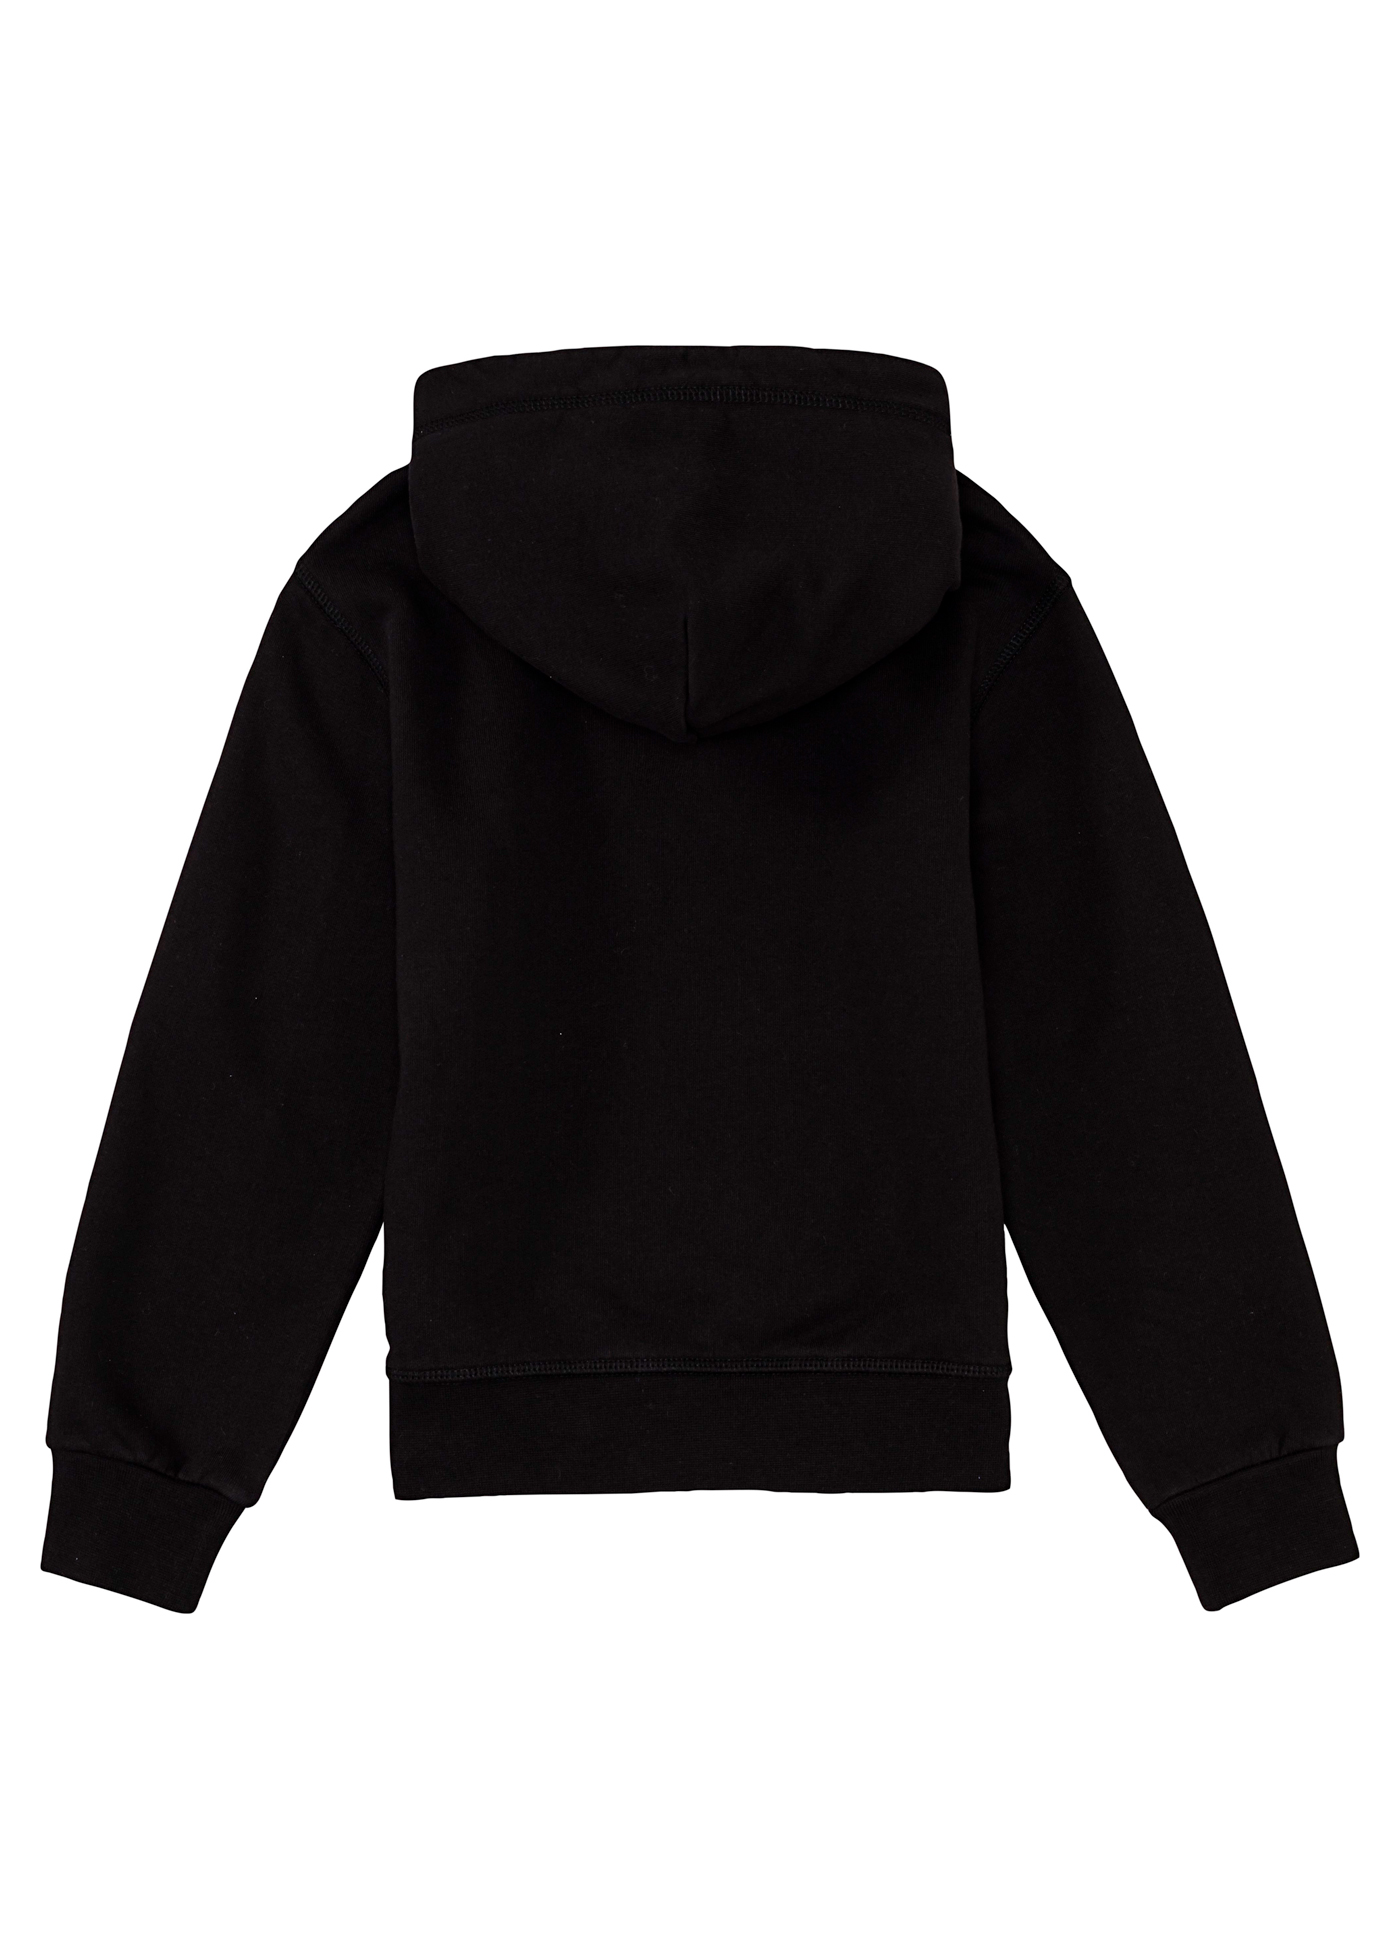 Hooded Sweater image number 1